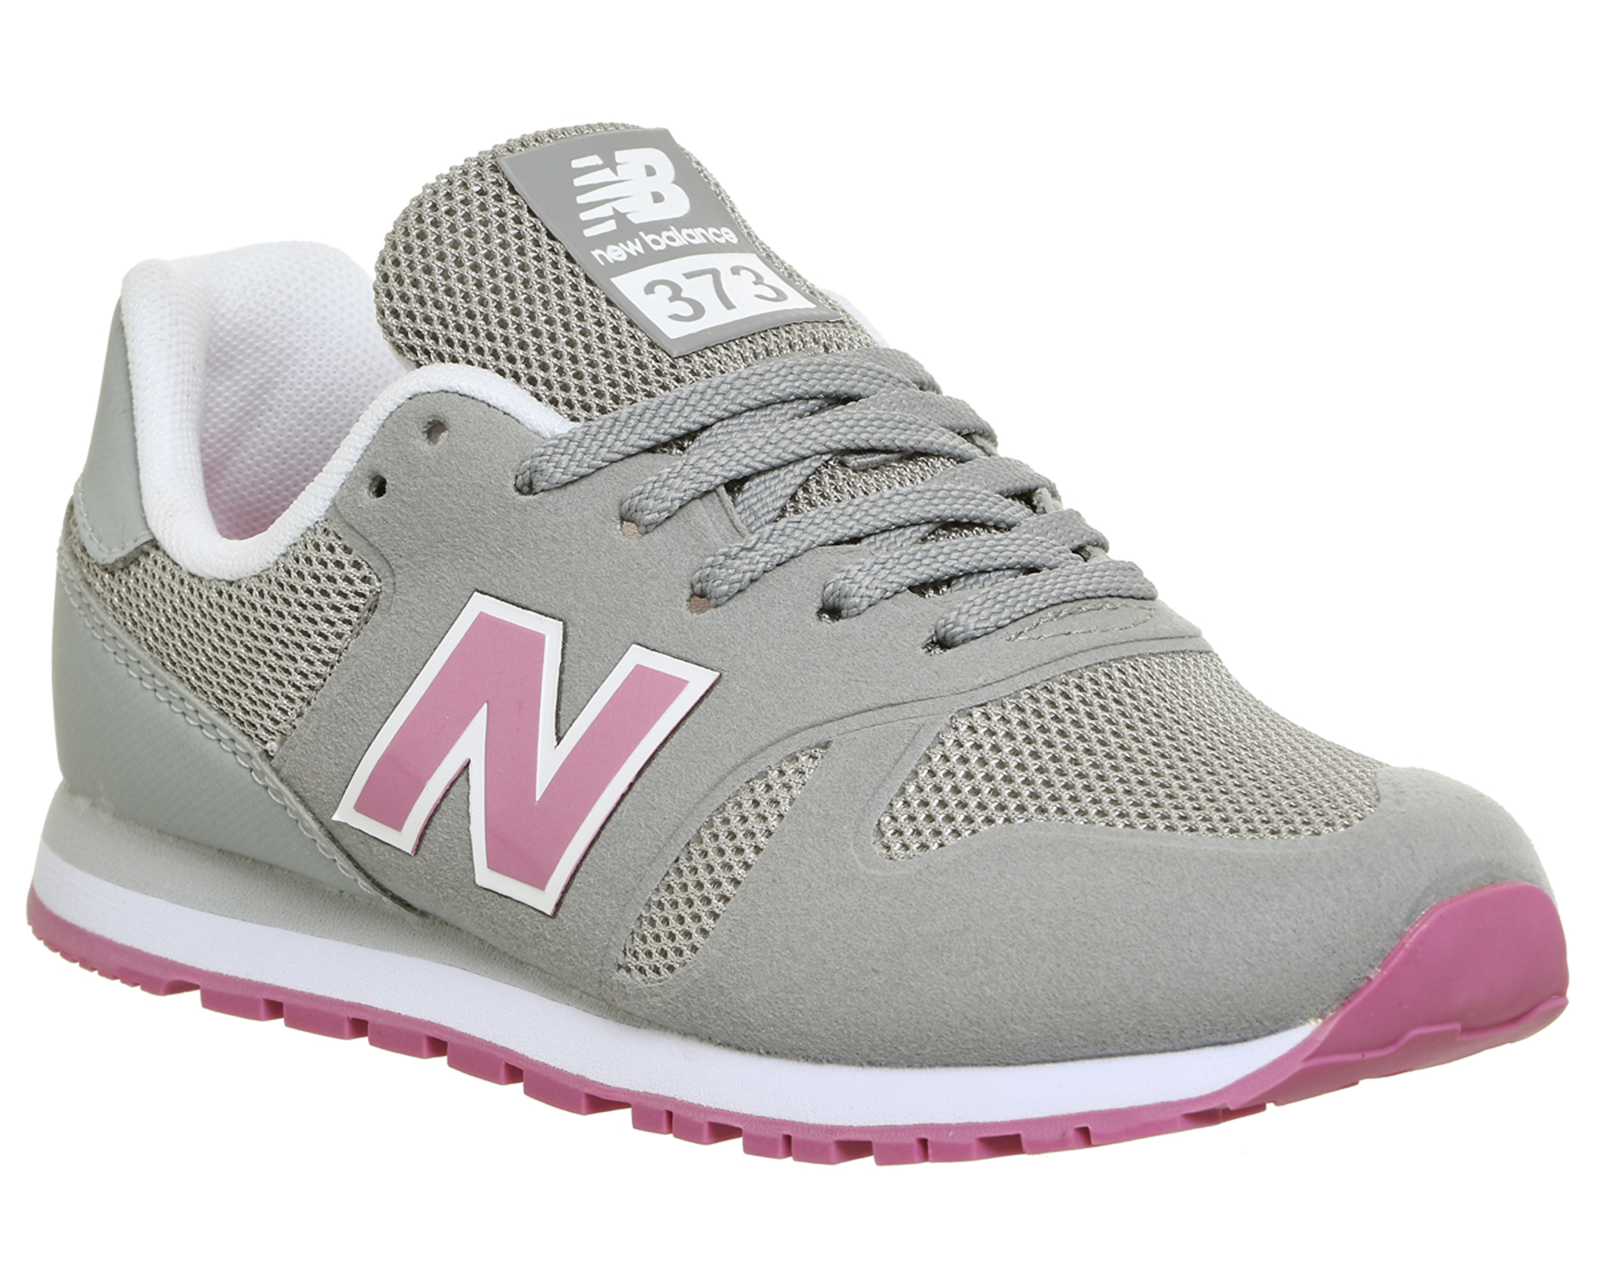 filósofo Fuera de borda guirnalda  grey pink new balance off 59% - www.ravornvillaboutique.com